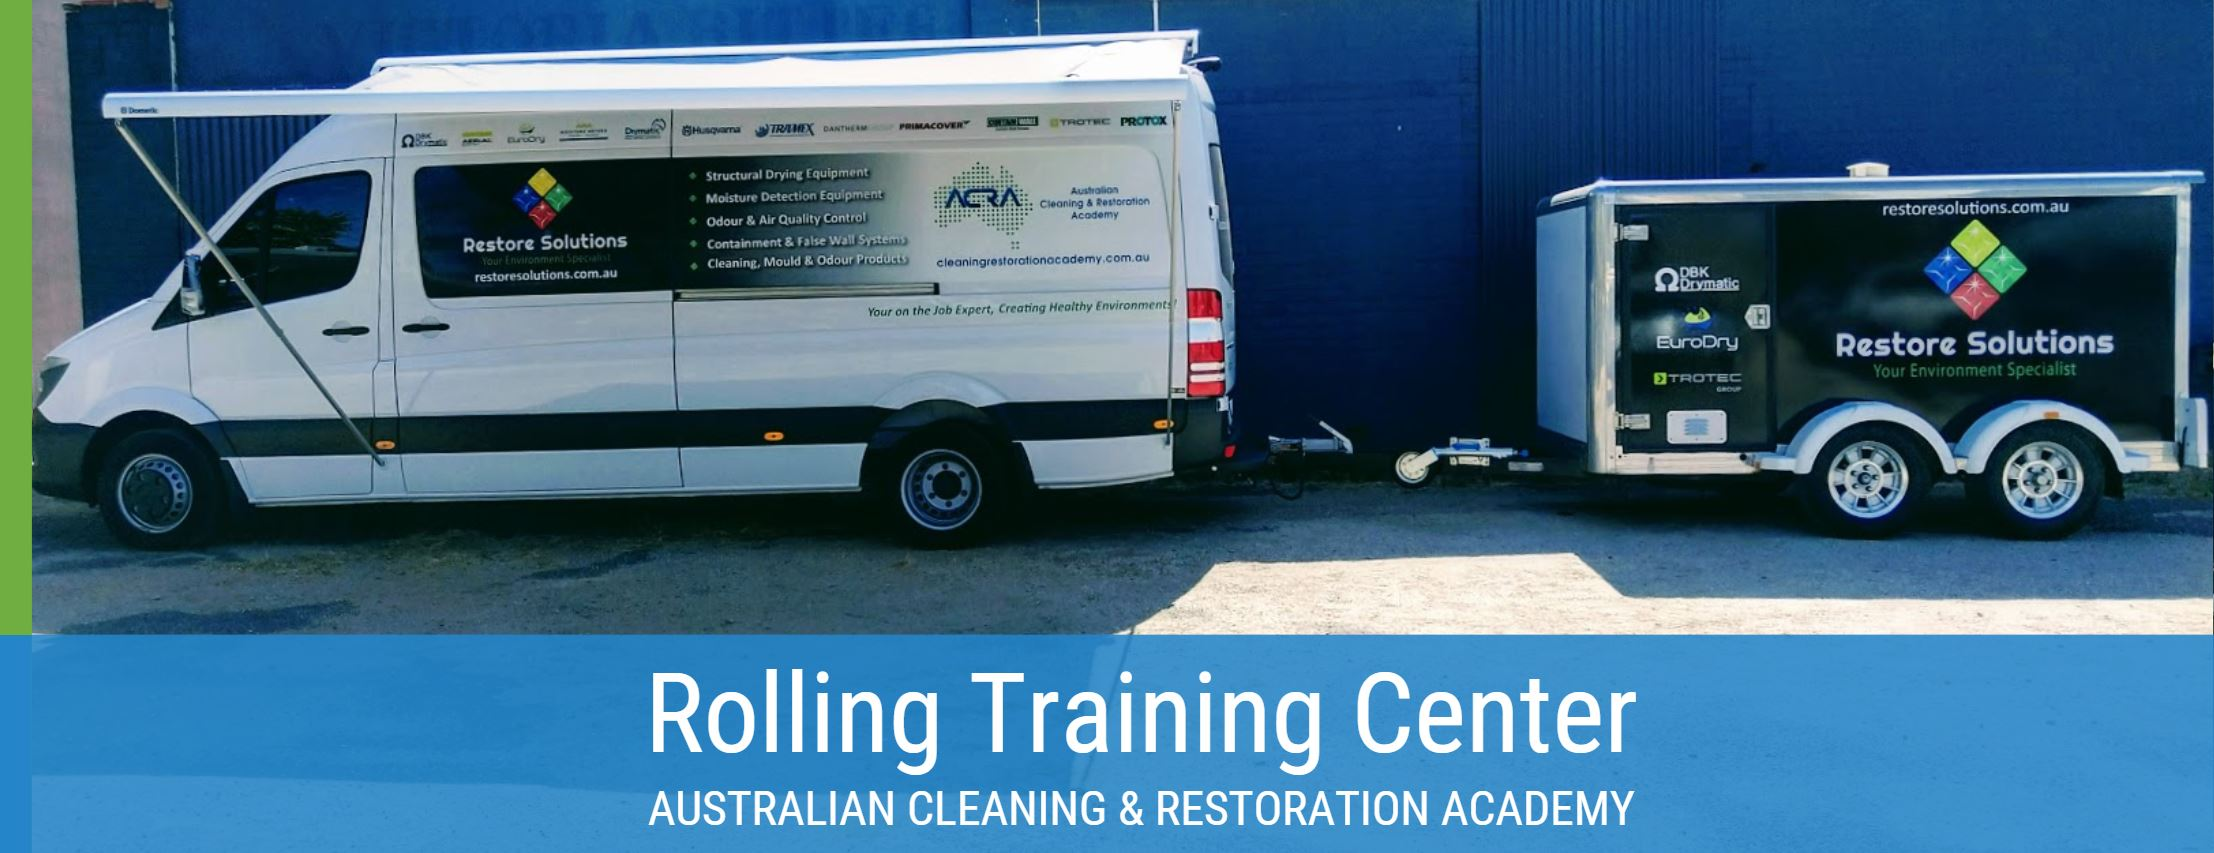 ACRA van - We teach at your place Australian Cleaning and Restoration Academy.JPG